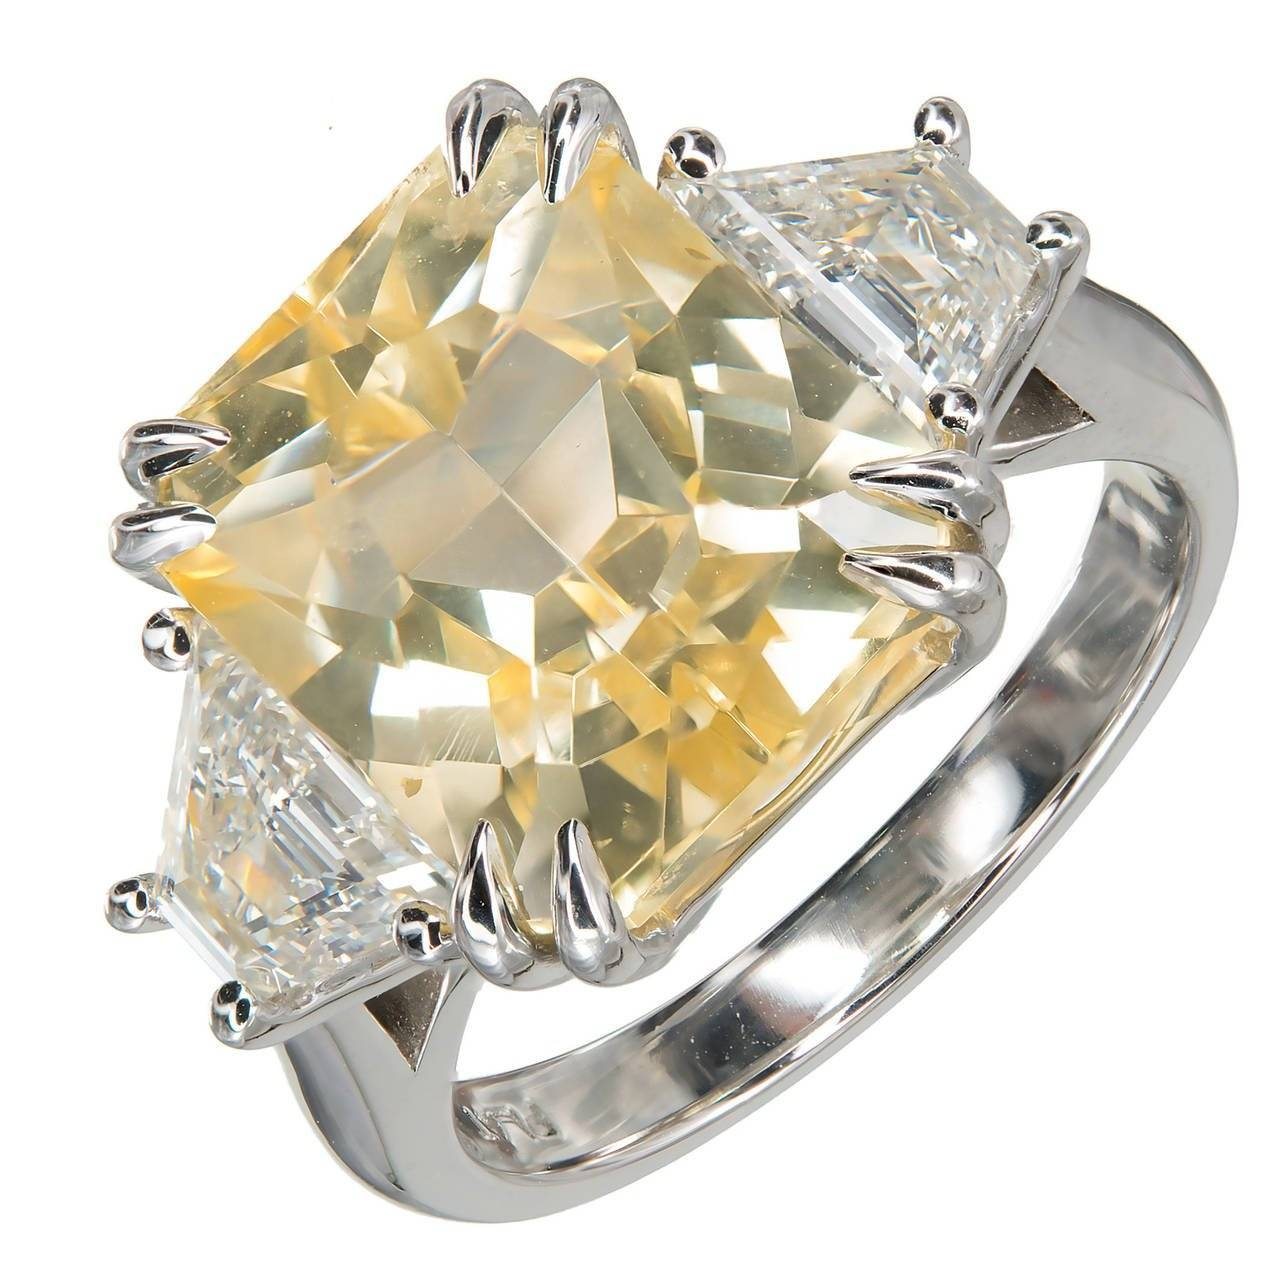 Peter Suchy 8.76 Carat Natural Yellow Sapphire Diamond Platinum Pertaining To Platinum Diamond And Sapphire Engagement Rings (Gallery 11 of 15)